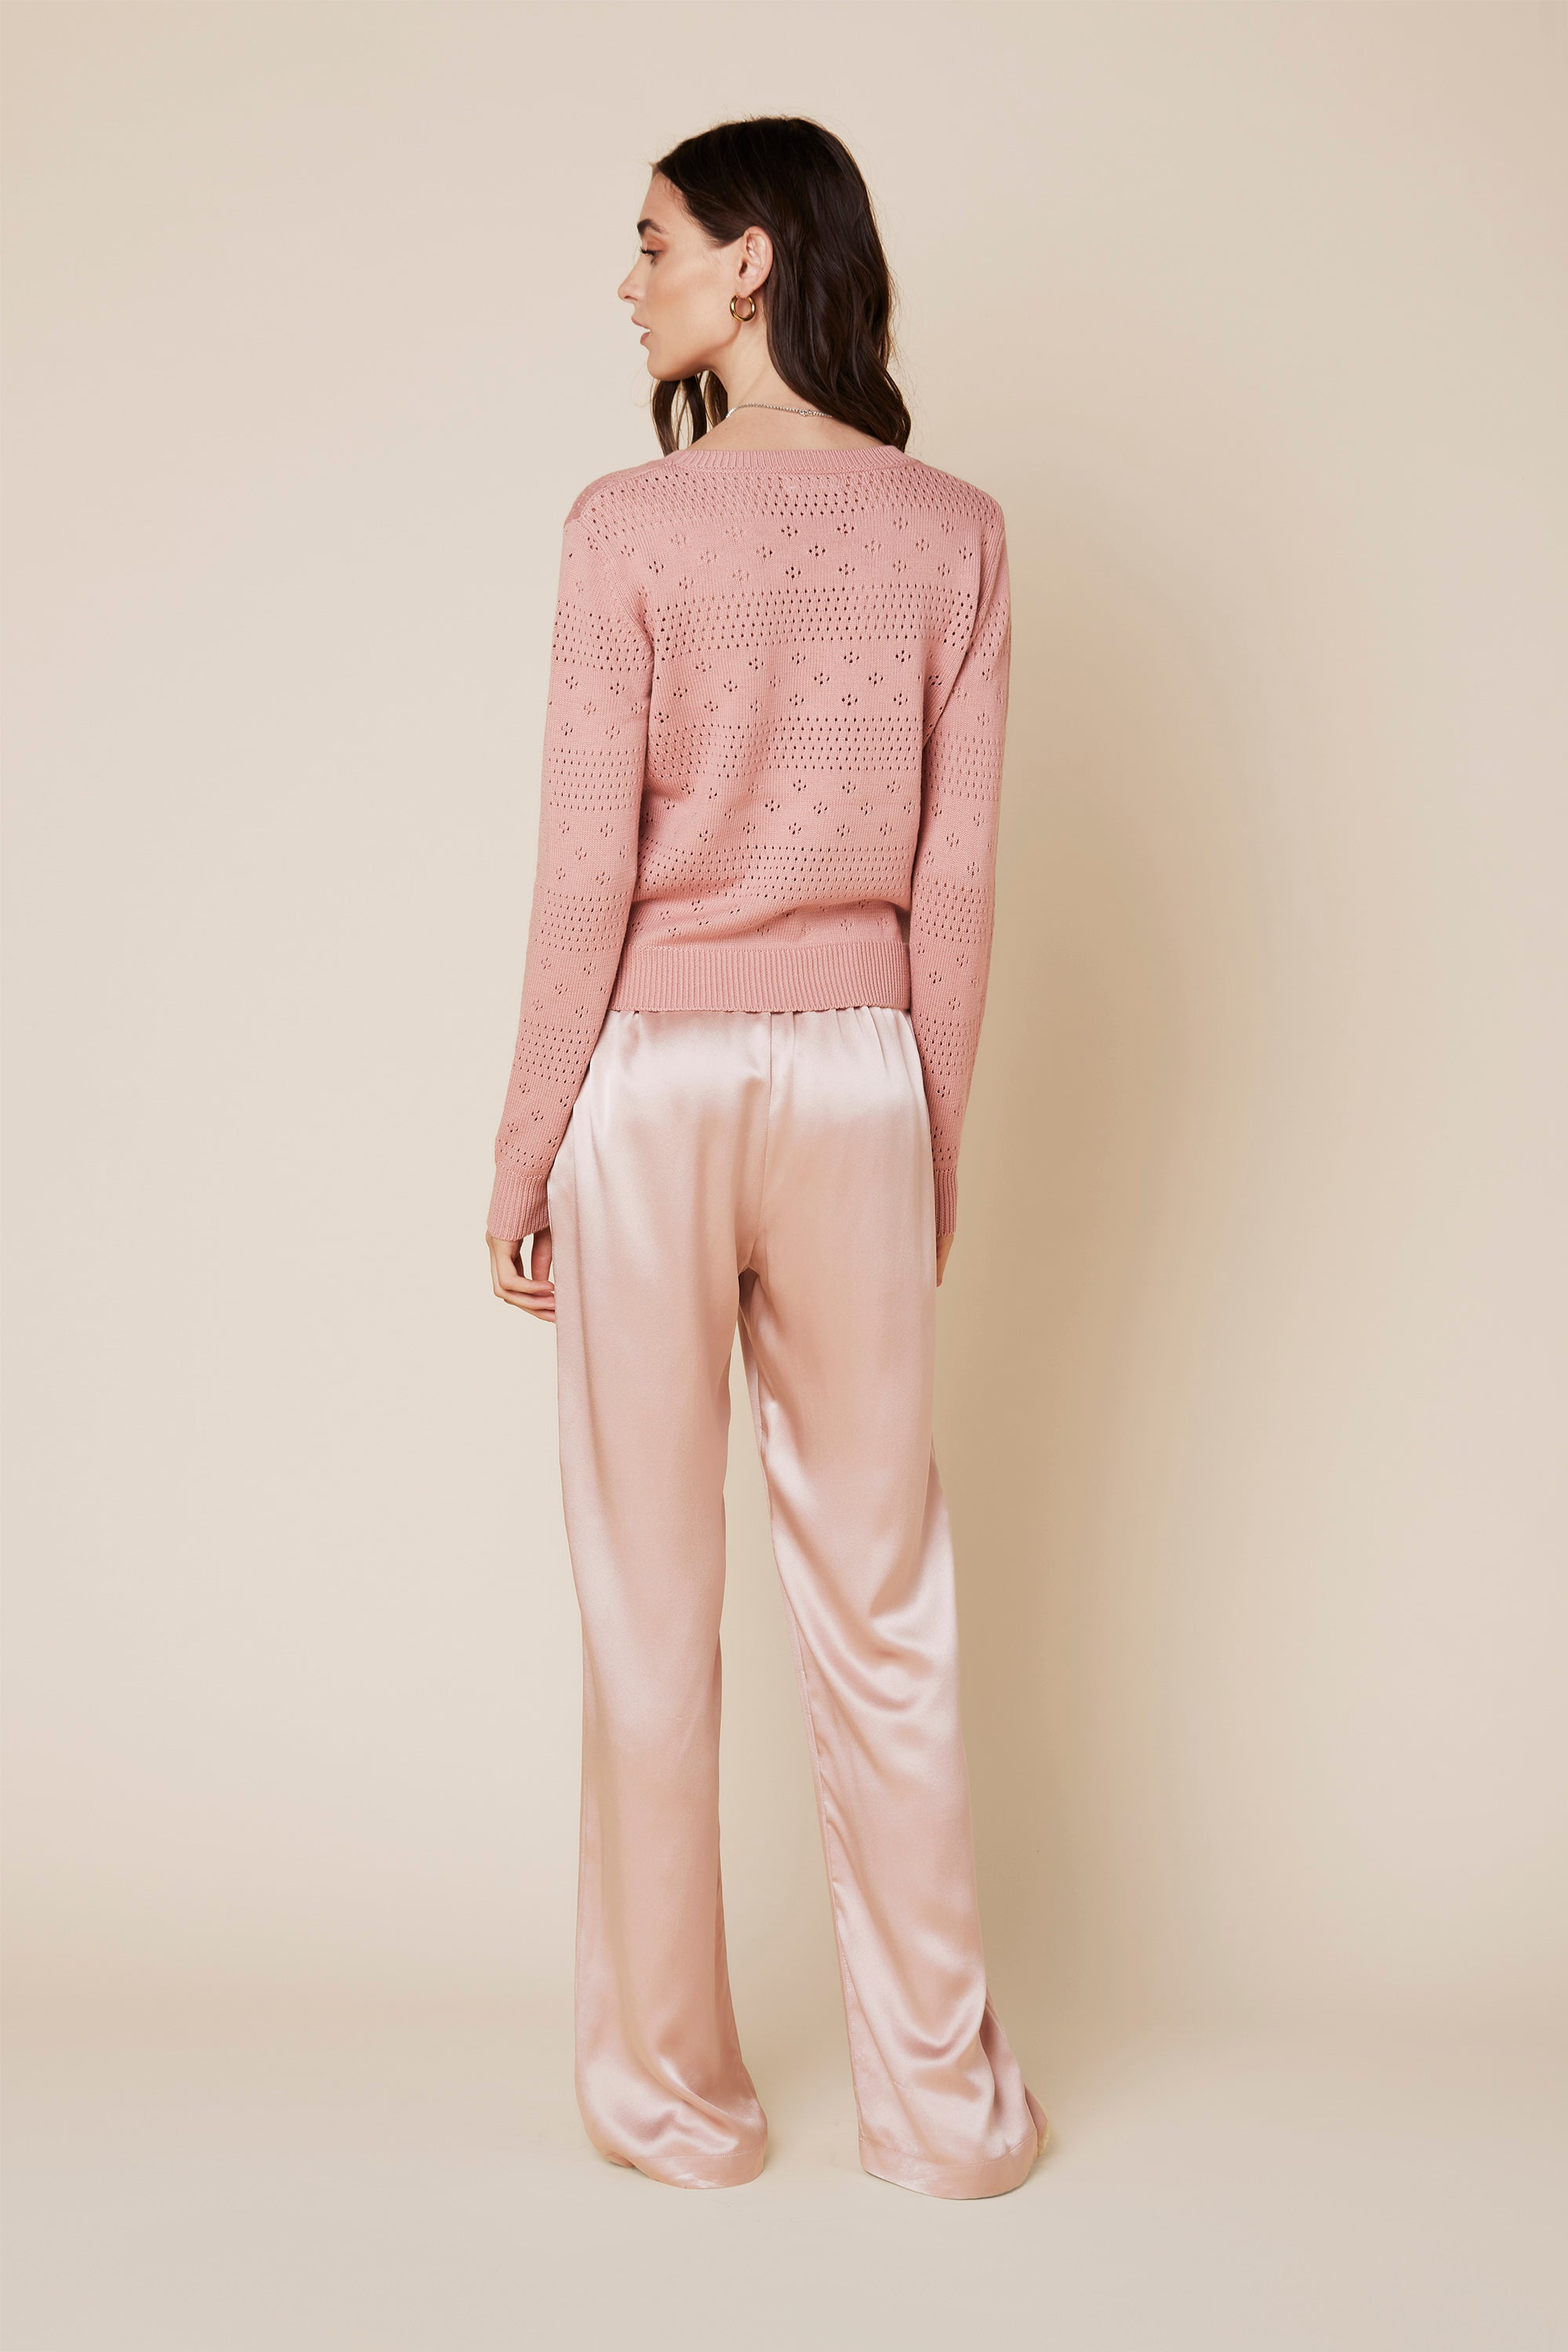 ZURI CASHMERE SWEATER | CHERRY BLOSSOM - Final Sale